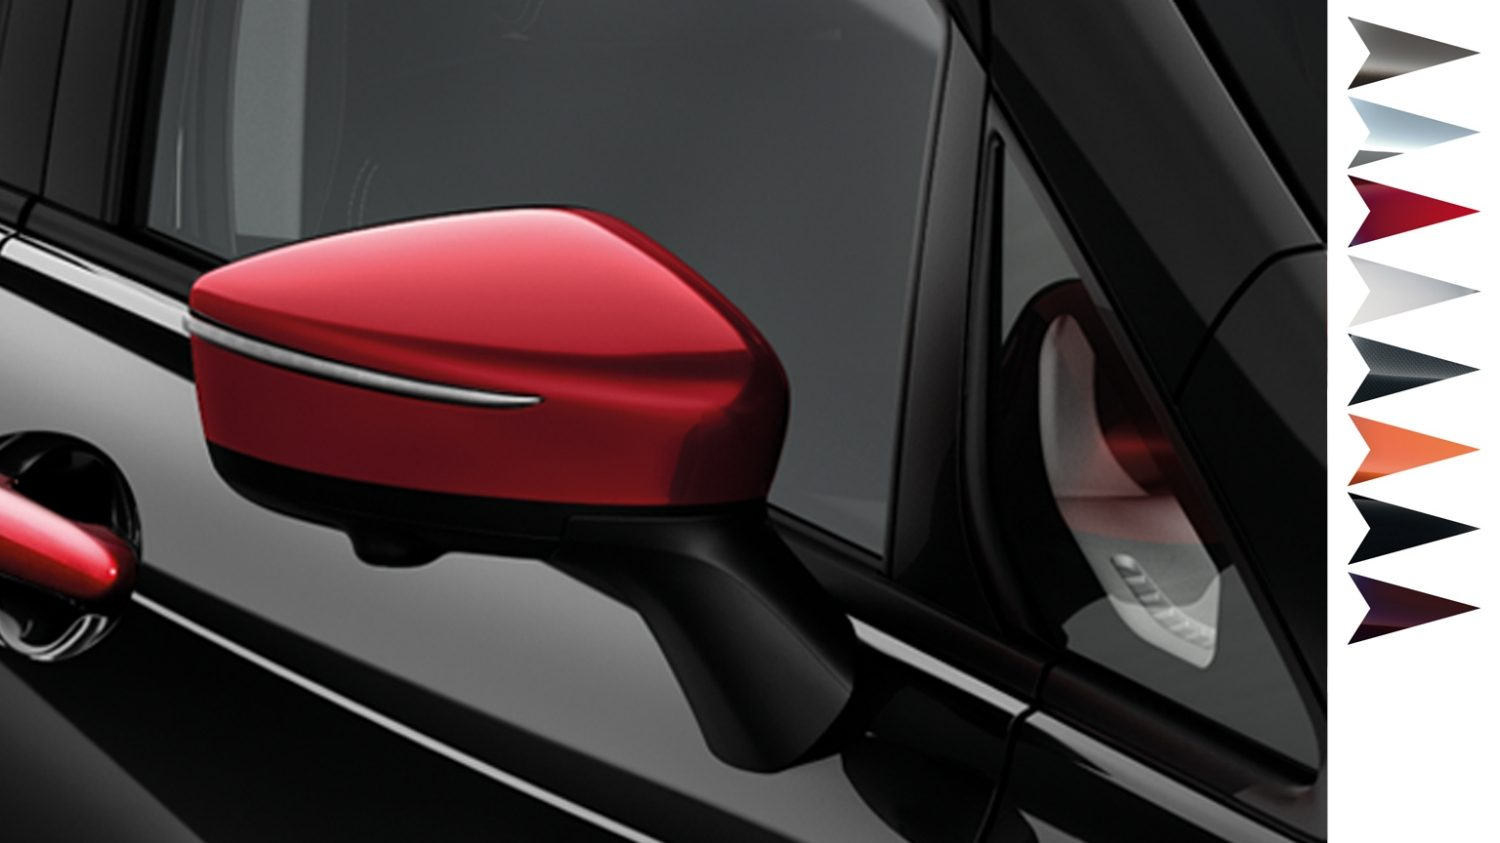 Nissan Note - Nissan design studio - Mirror caps detroit red